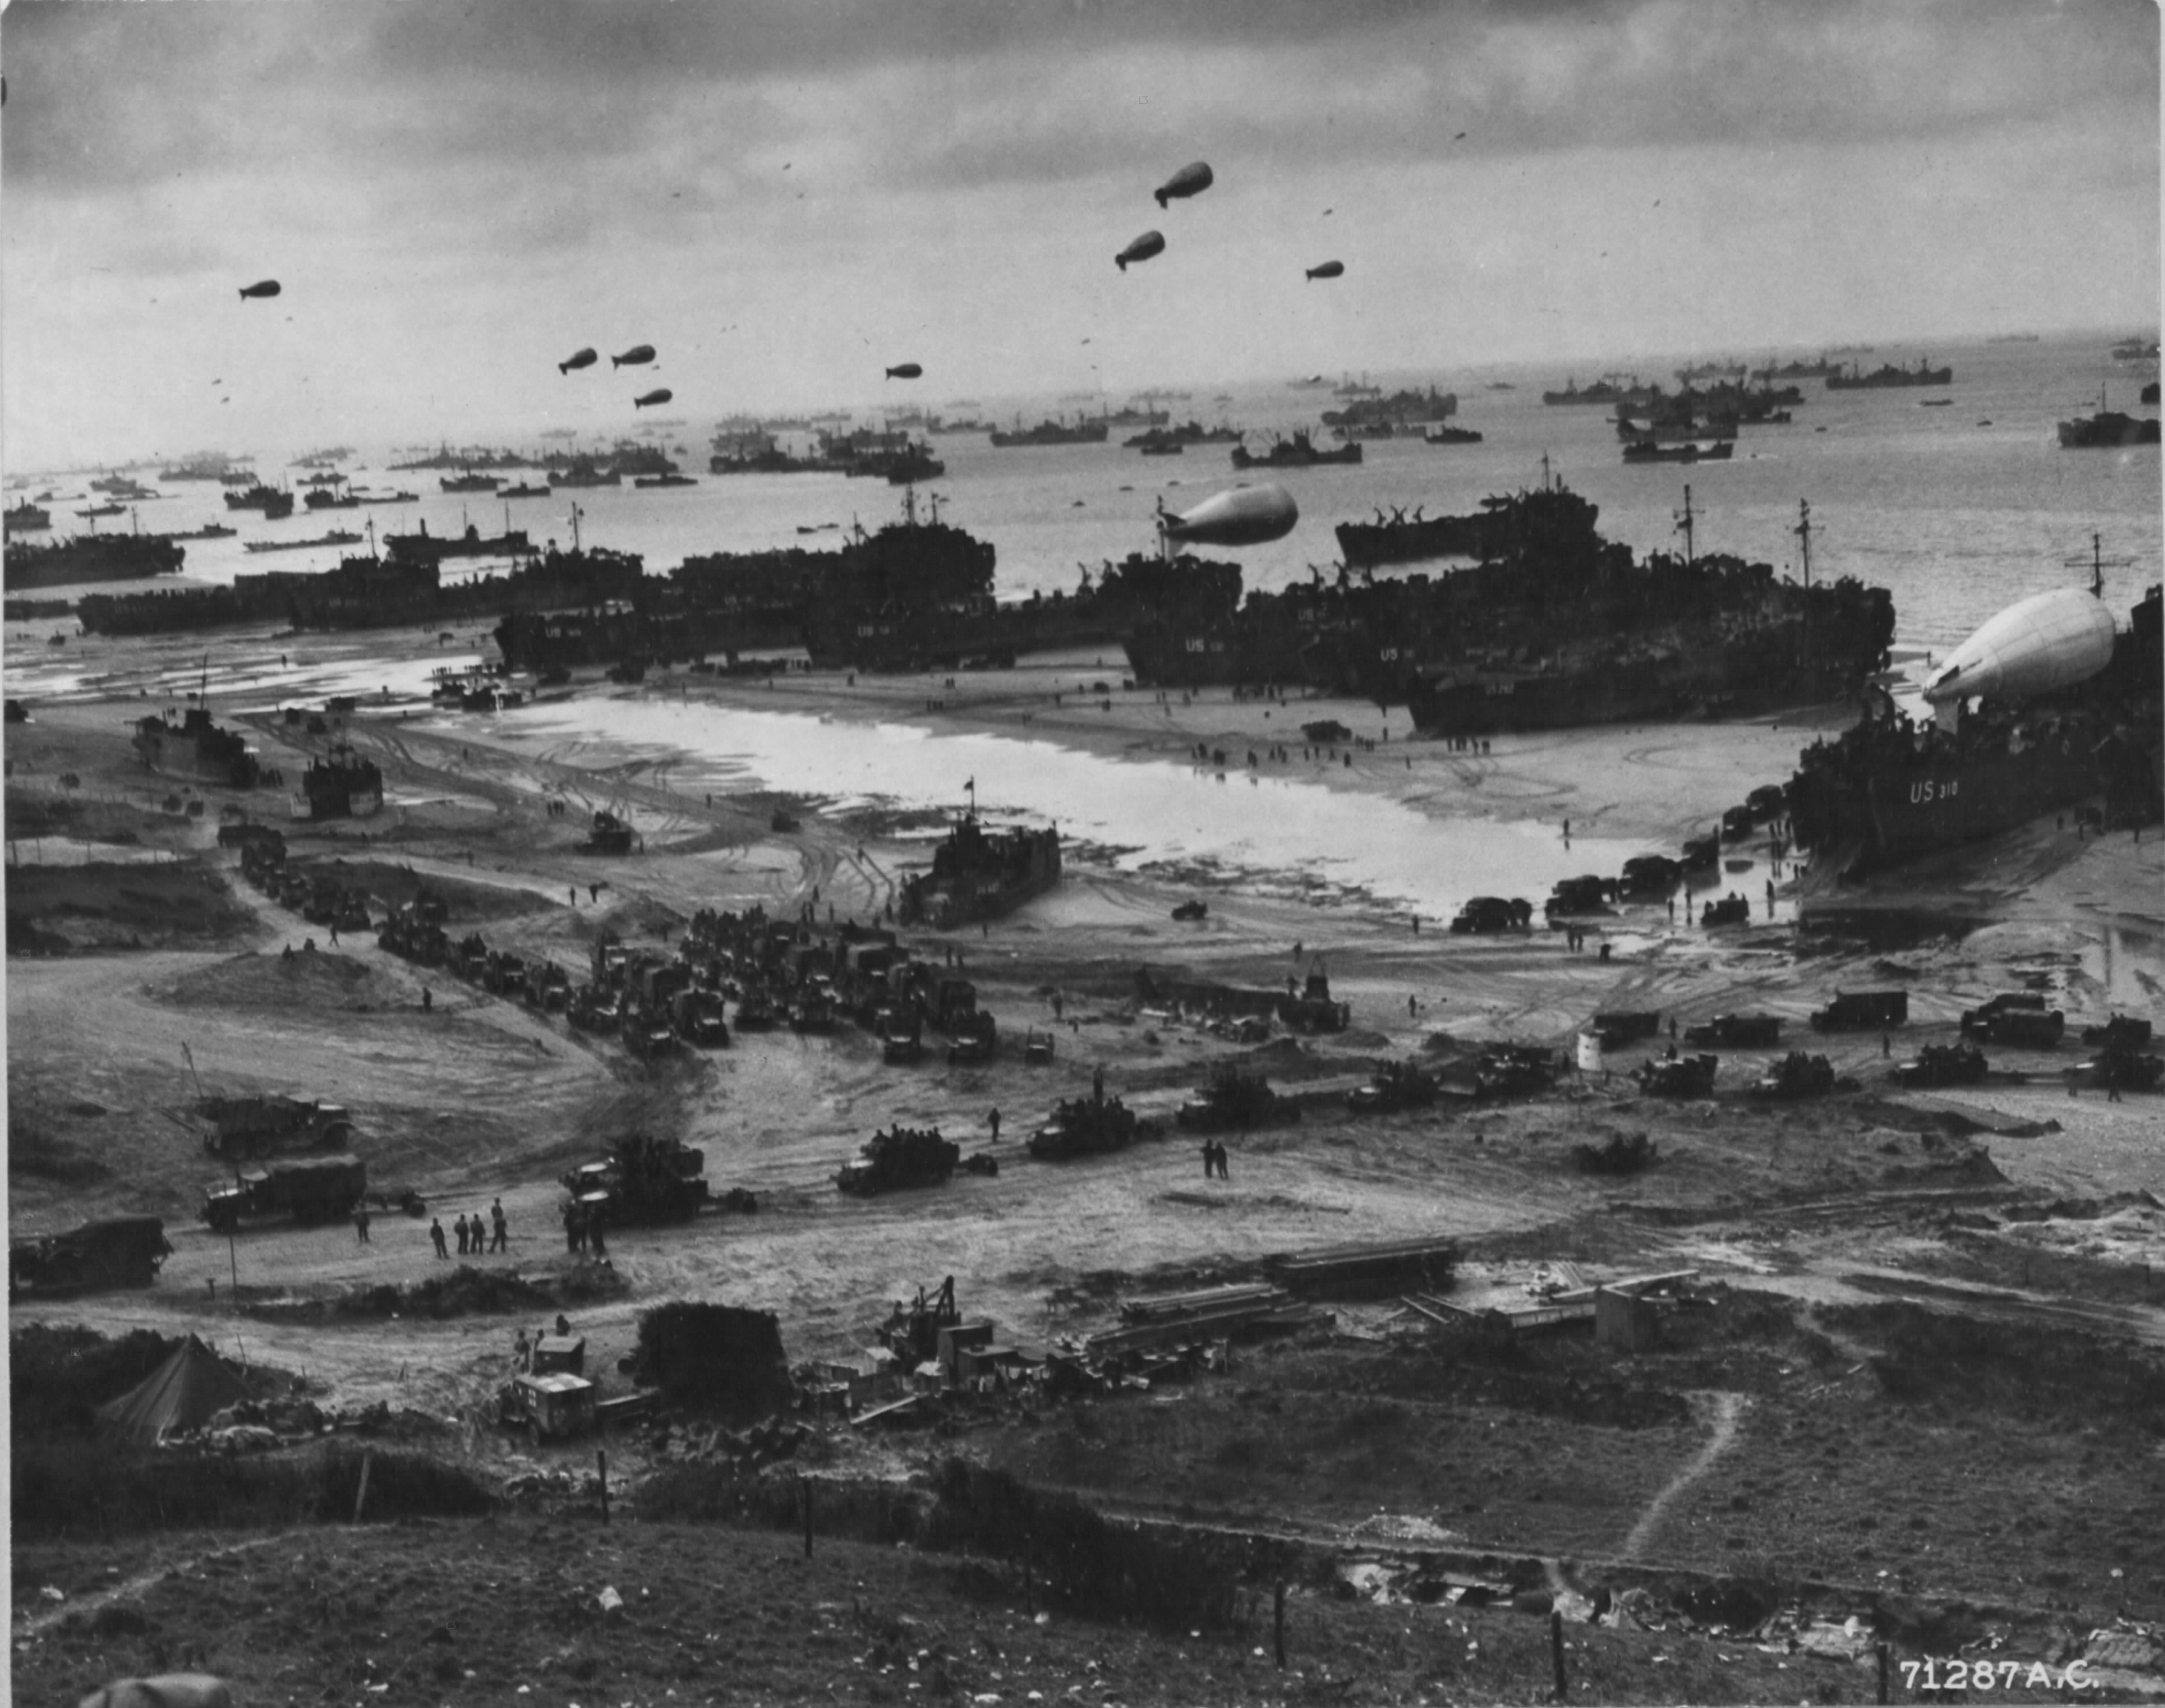 Barrage Balloons over Normandy Beaches on D-day